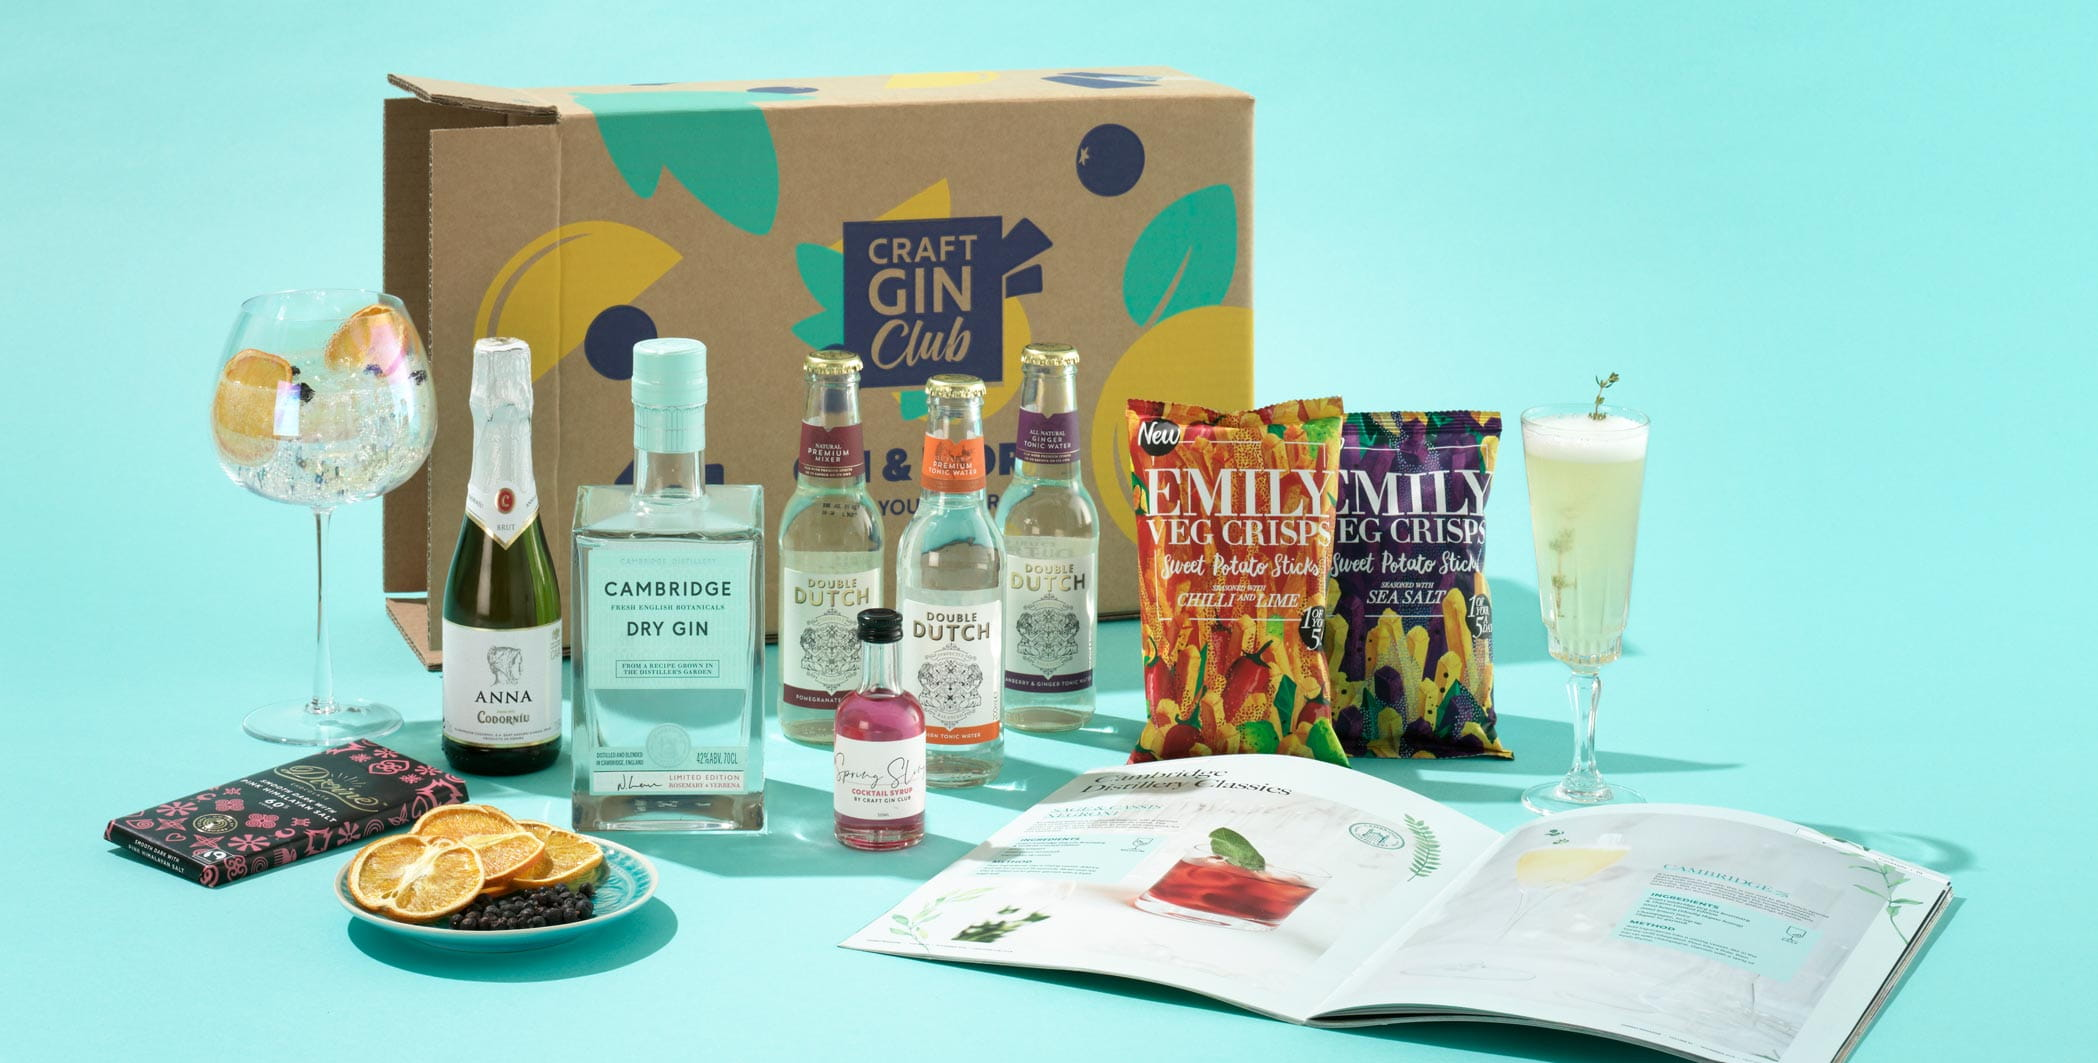 Craft Gin Club box with gin, mixers and snacks